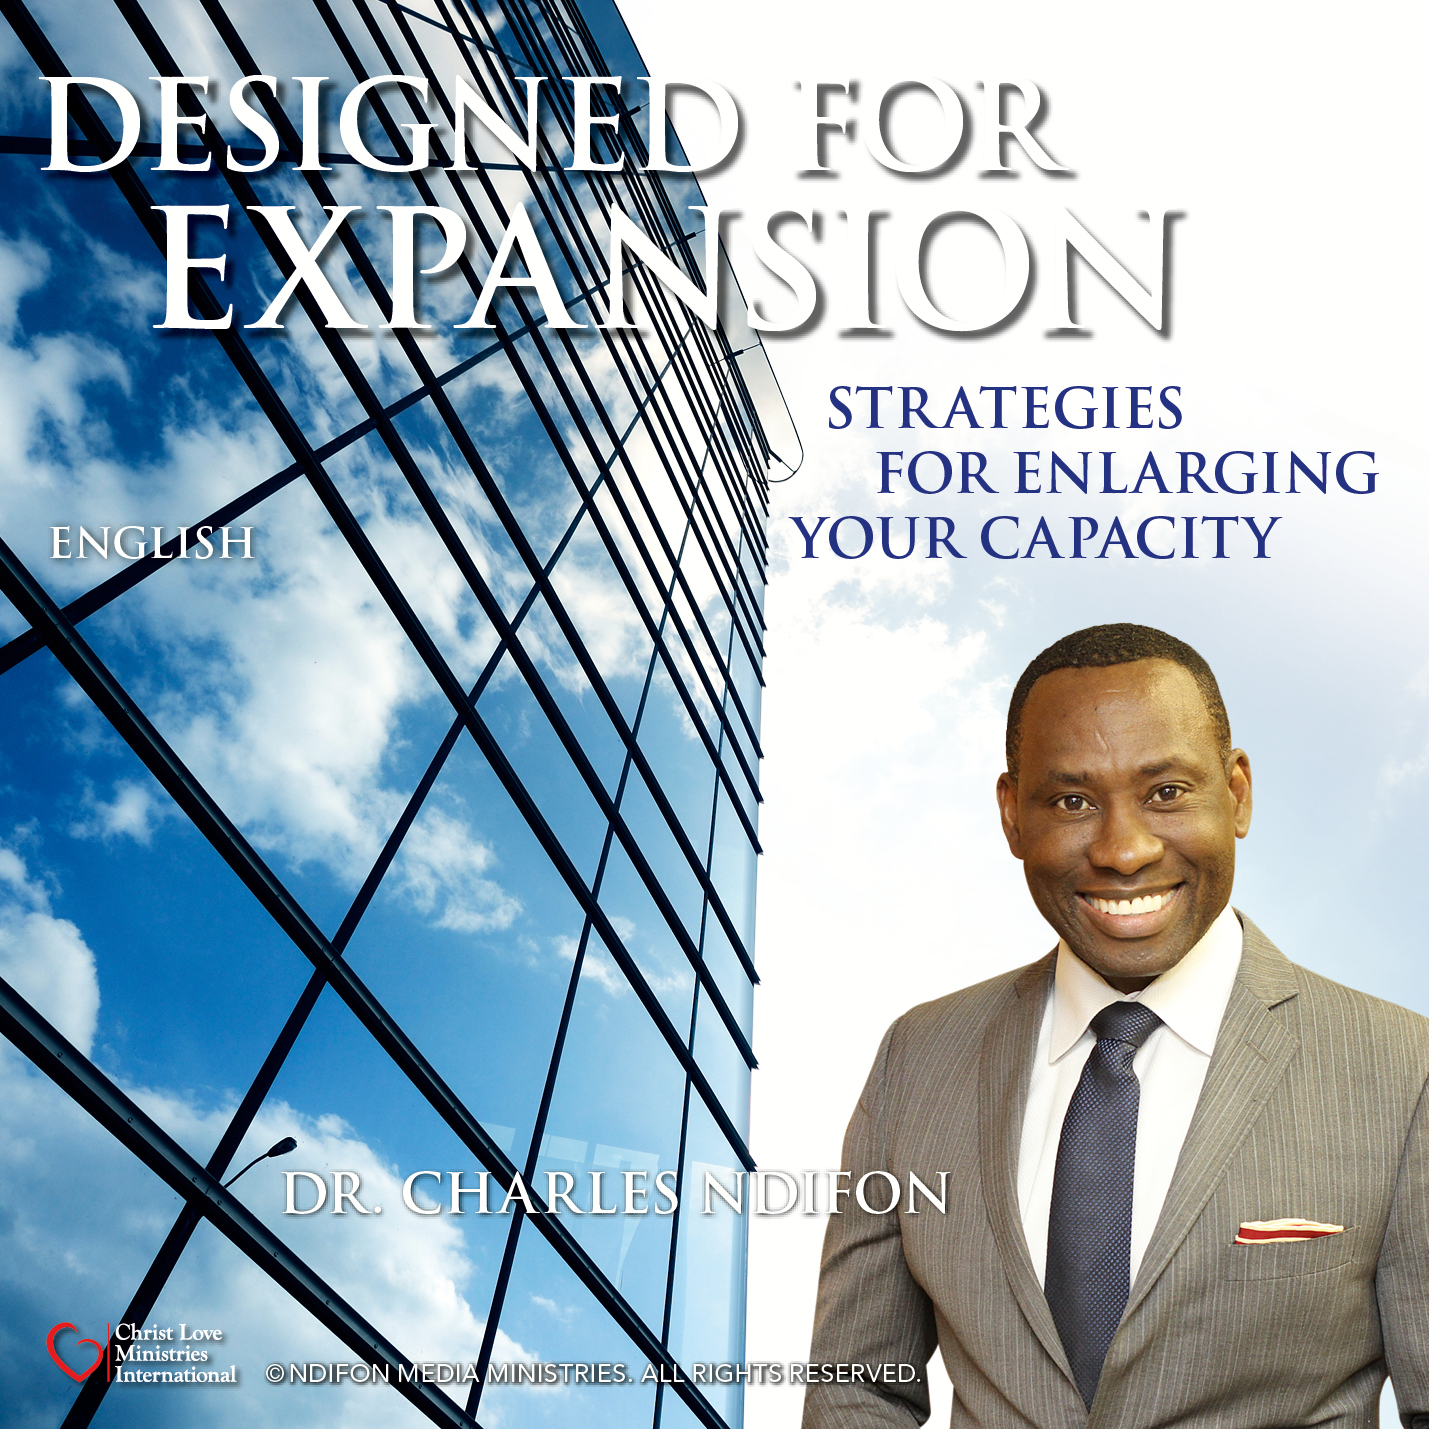 Designed for Expansion – Strategies for Enlarging Your Capacity